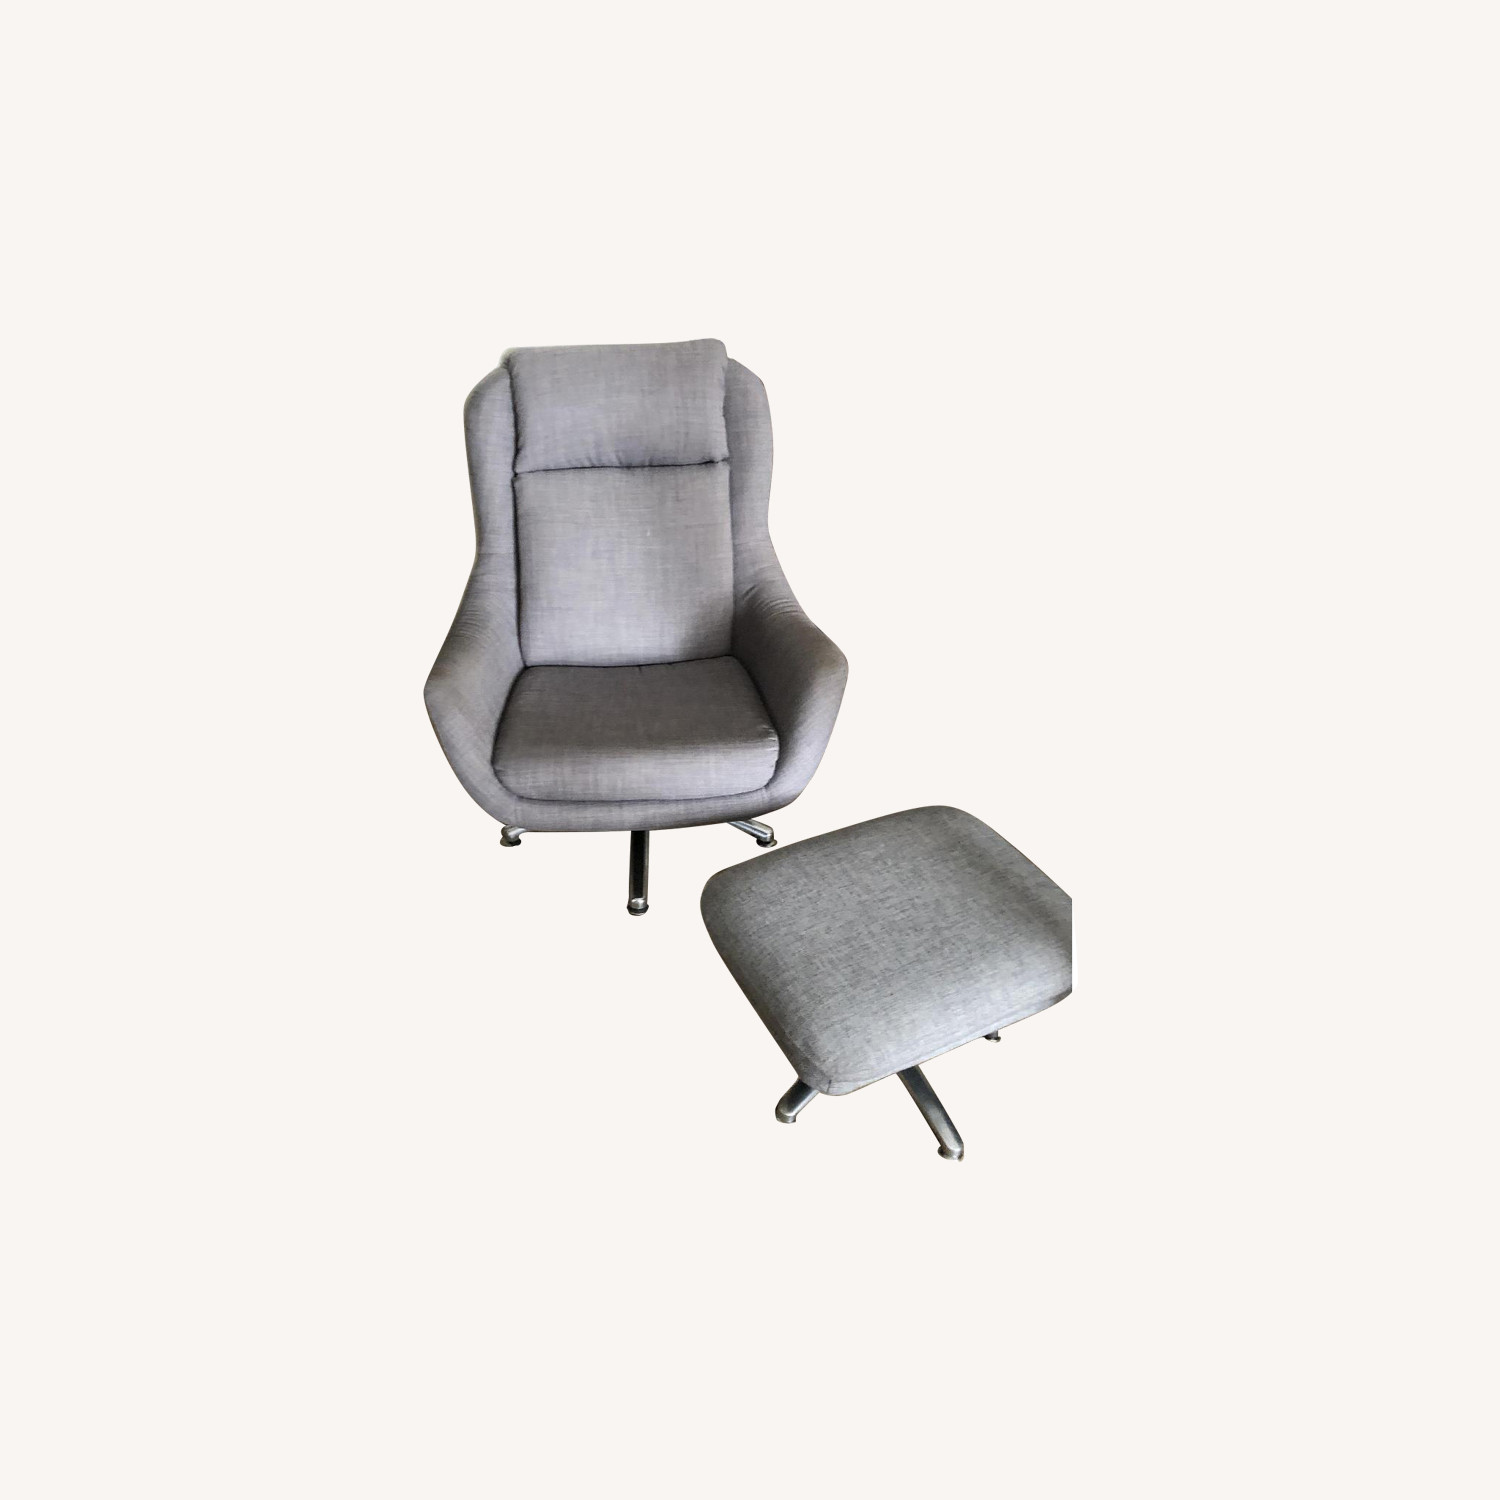 Overman Office Chair & Footstool